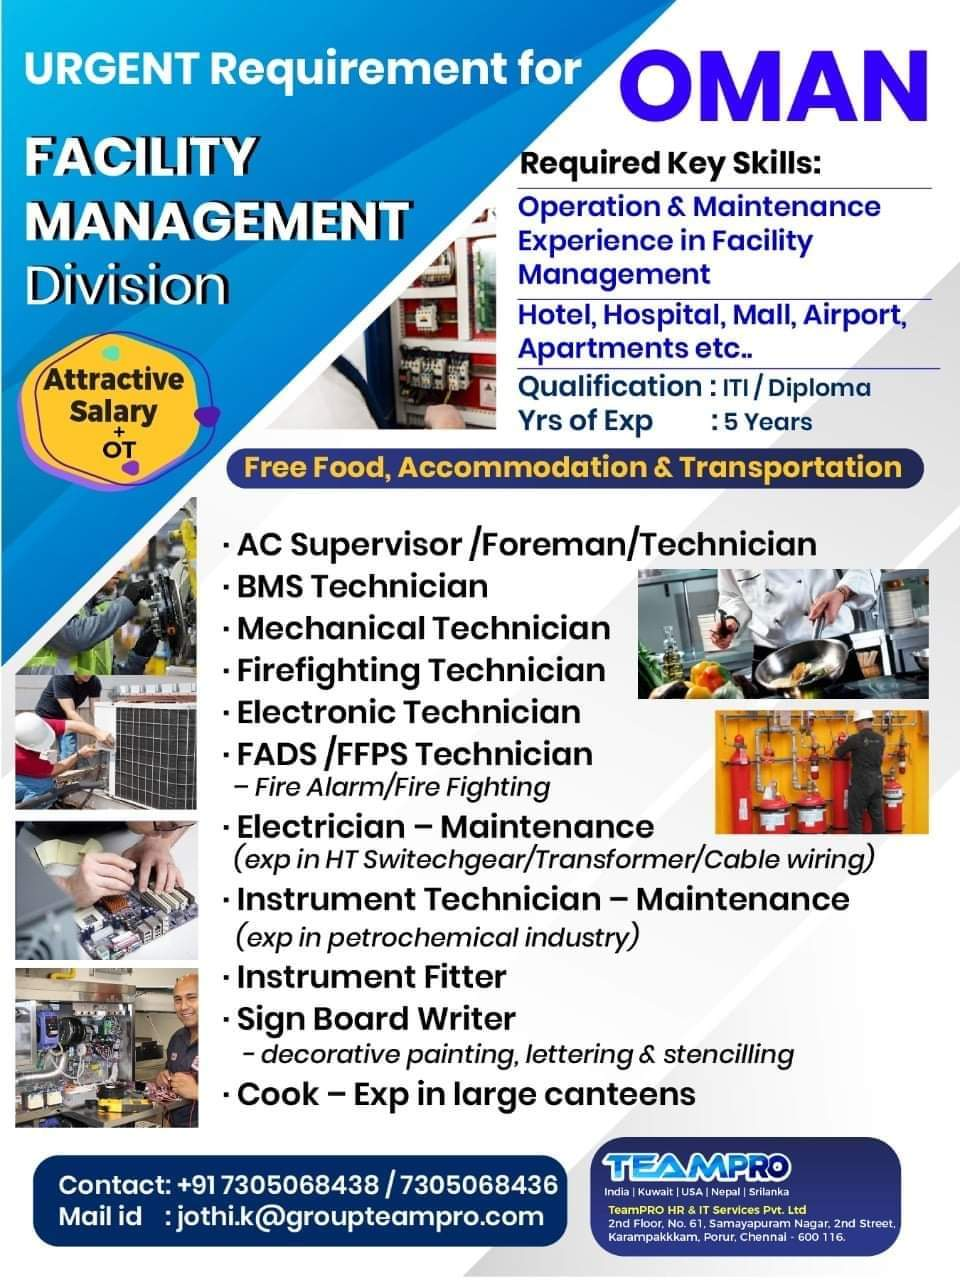 URGENTLY REQUIRED AT OMAN FOR FACILITIES MANAGEMENT